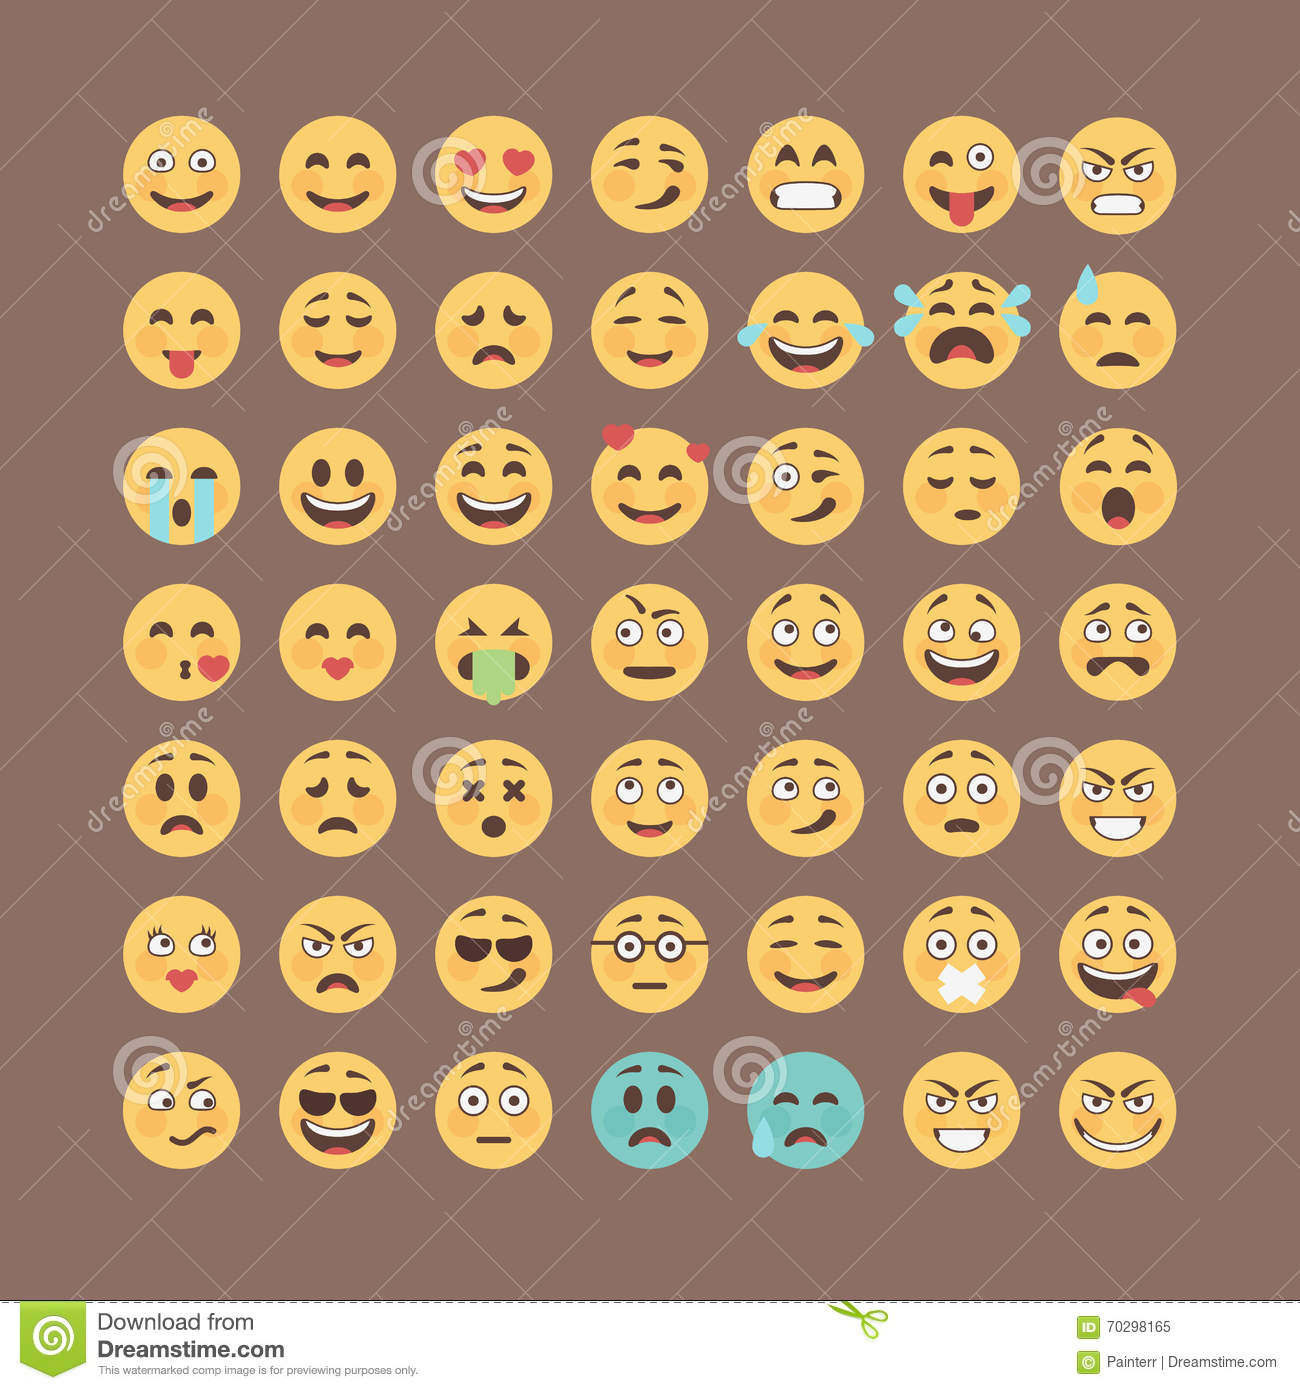 Emoticons collection. Flat emoji set. Cute smileys icon pack. Vector illucttration